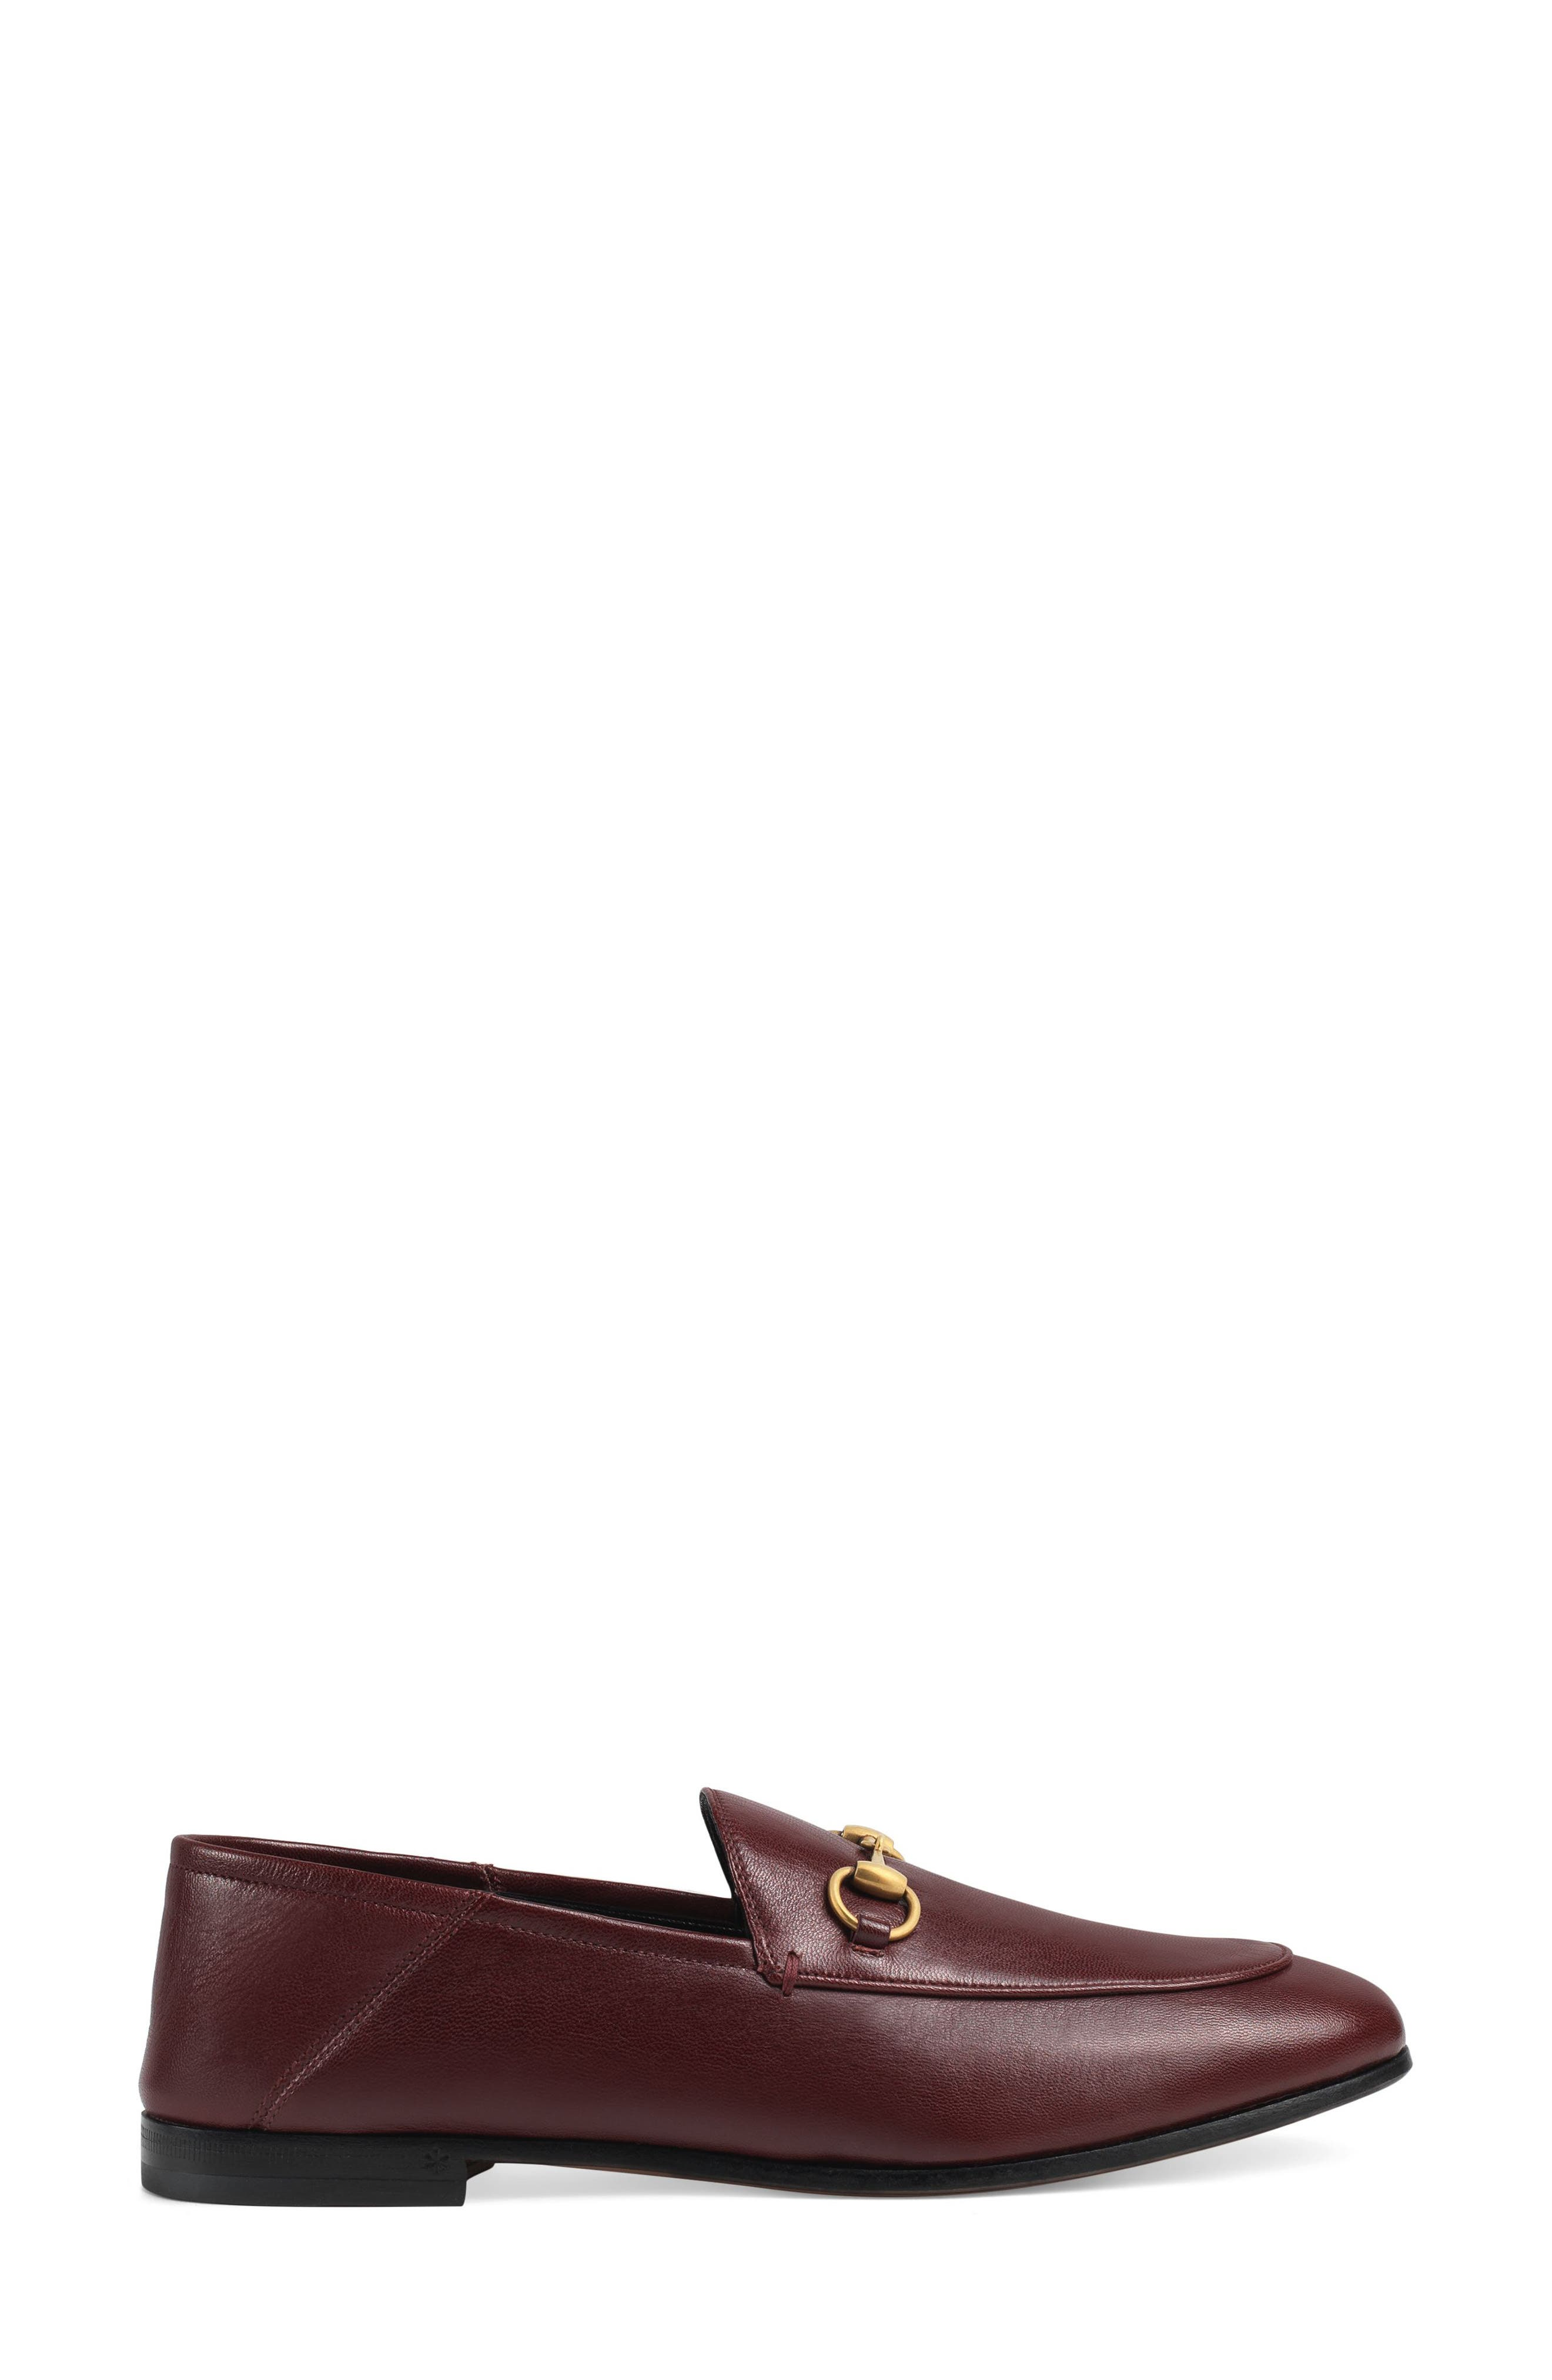 Brixton Convertible Loafer,                             Alternate thumbnail 2, color,                             VINTAGE BORDEAUX